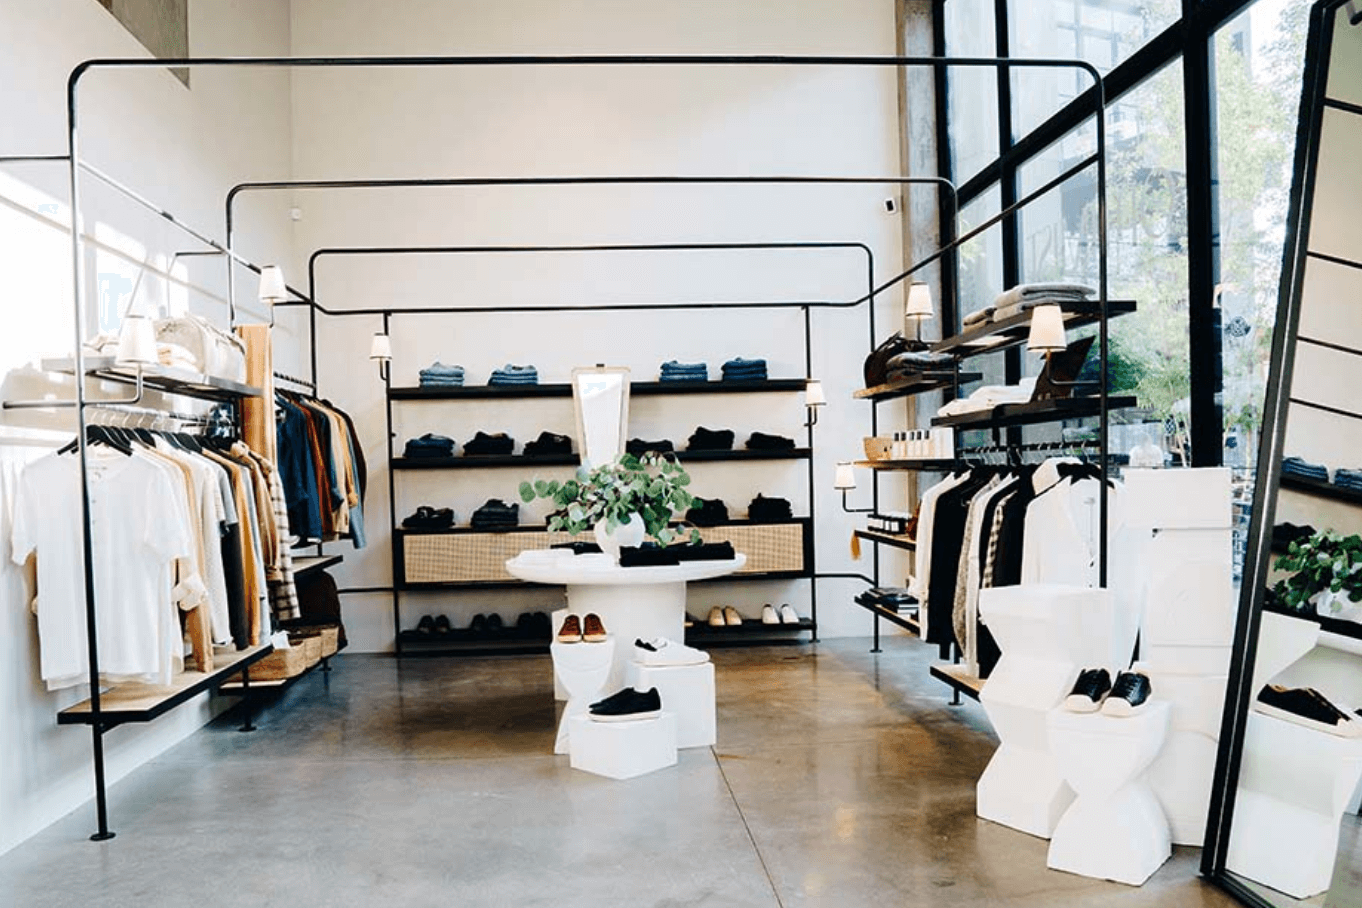 A First Look at L.A.'s New Men's Shop The Optimist - Women's Wear Daily